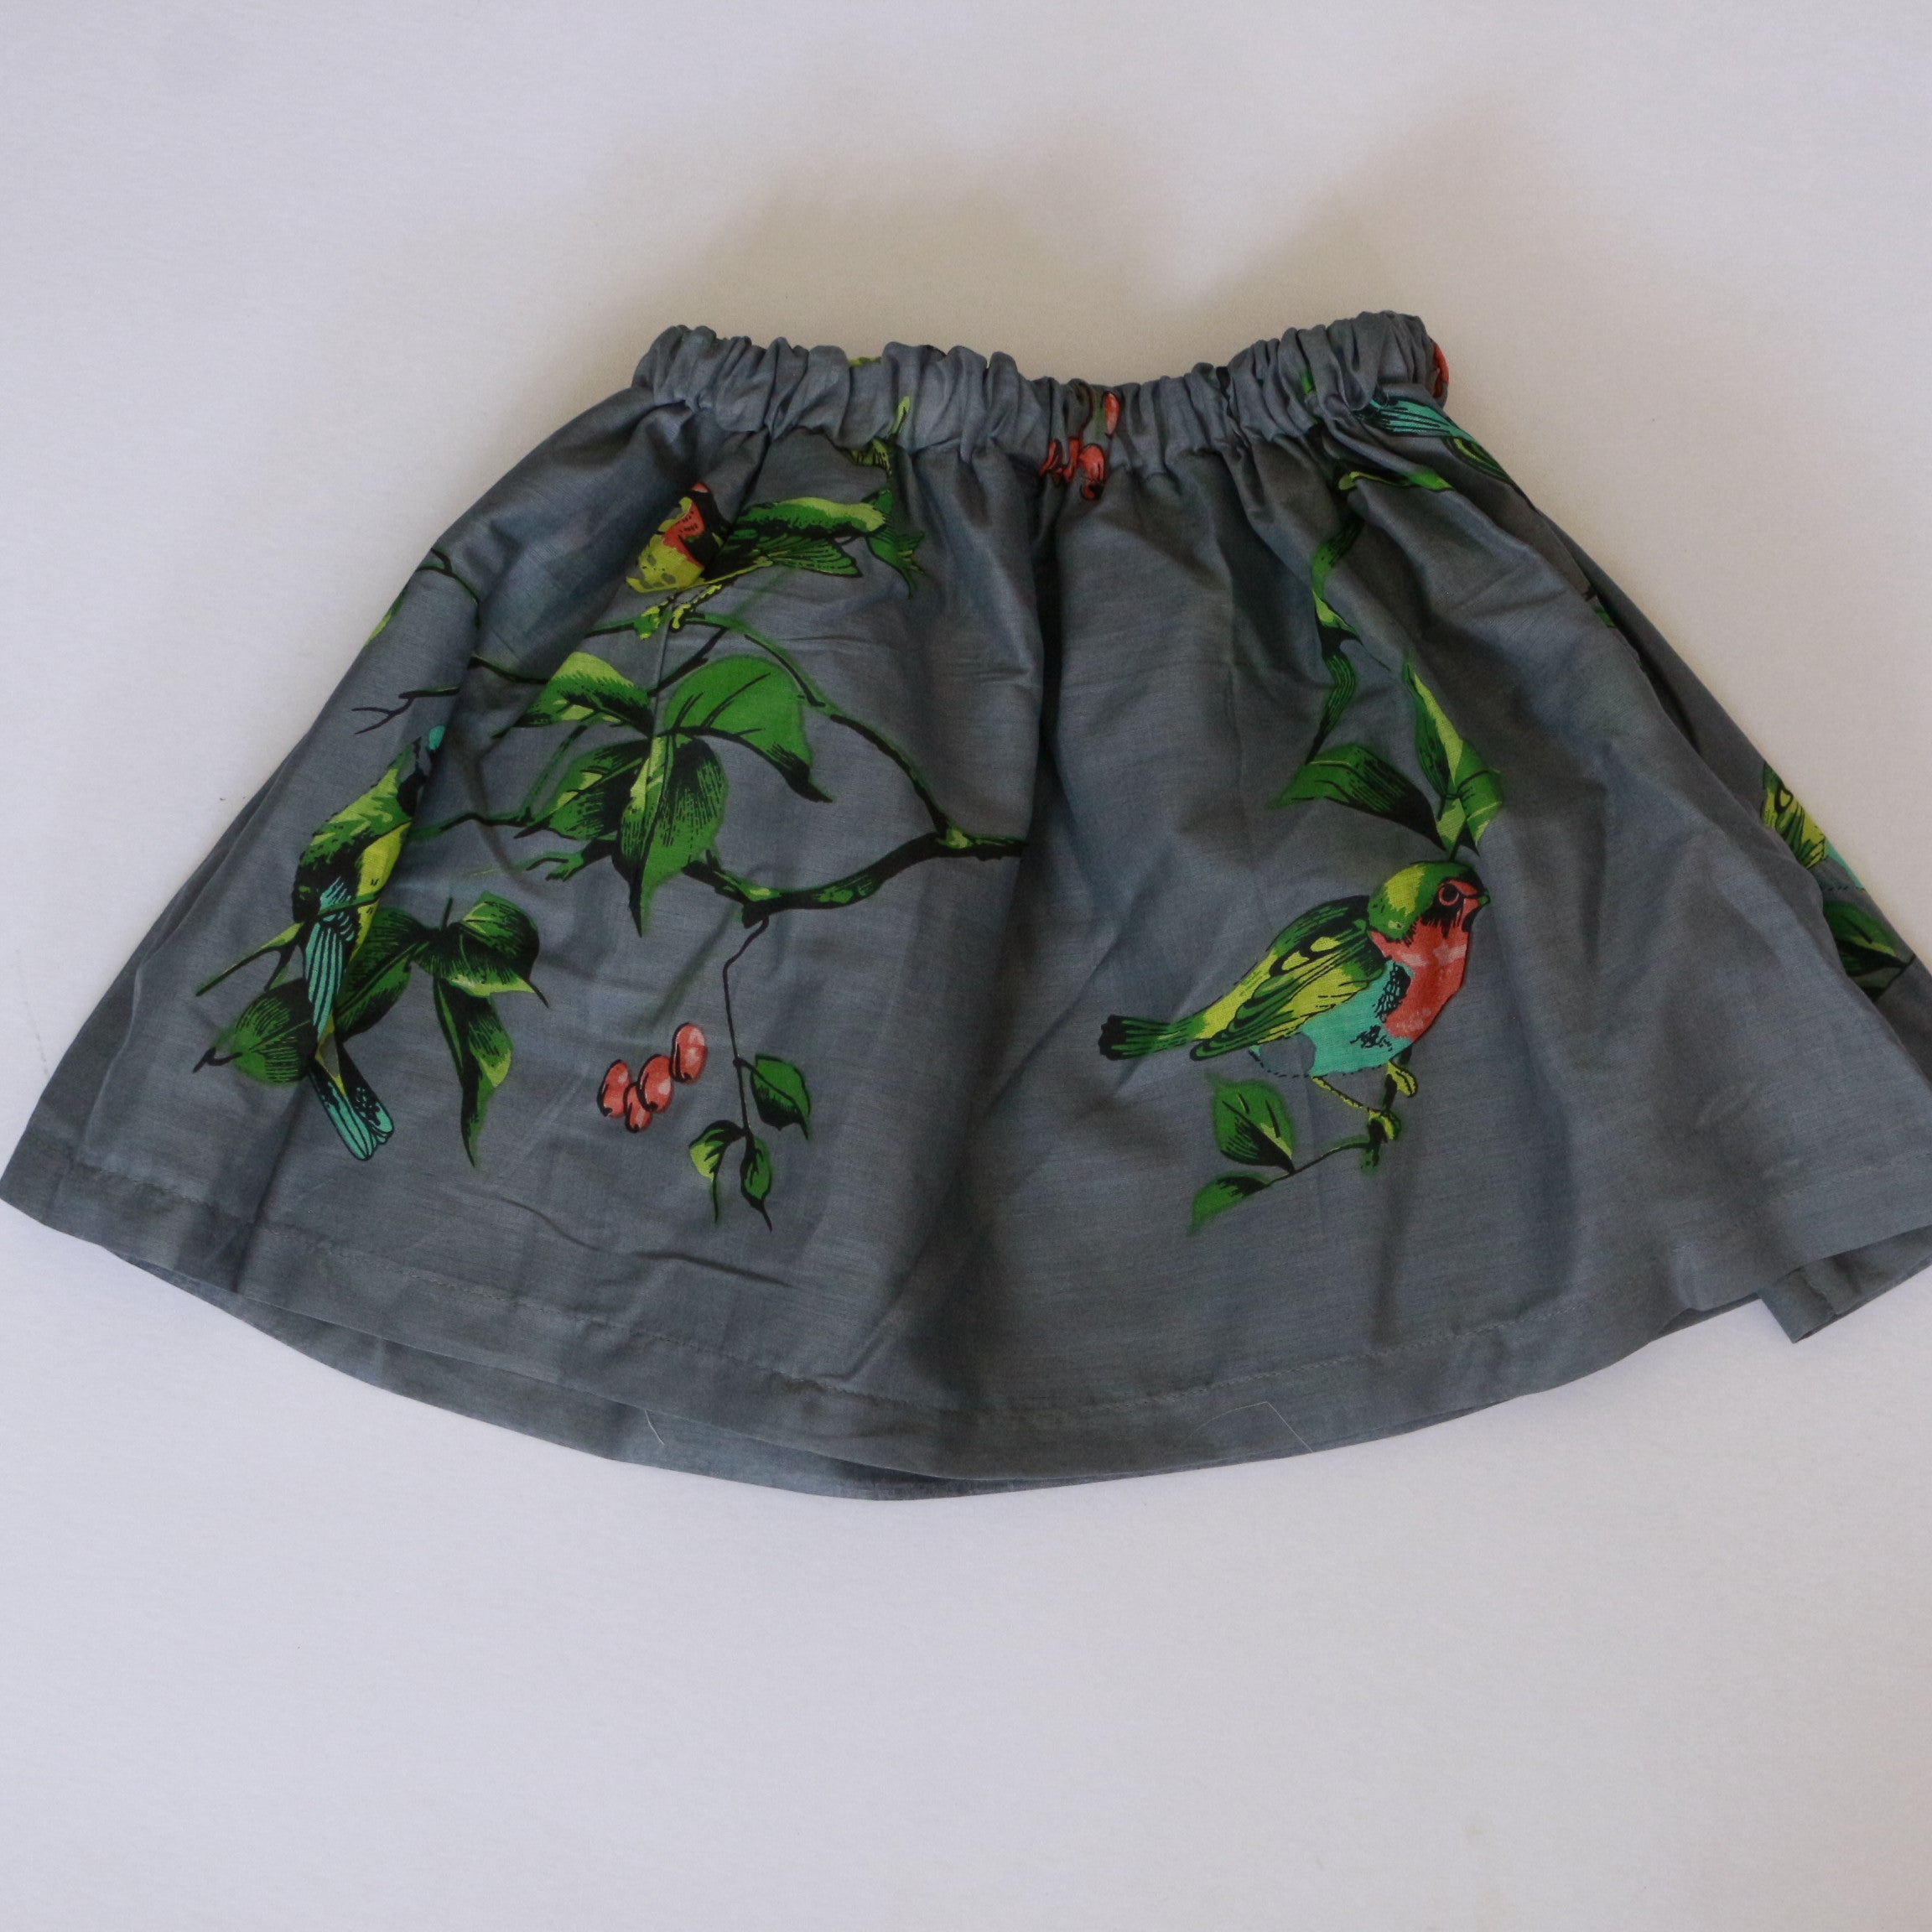 Nine Yaks - Nine Yaks kids Grey bird skirt - last minute gift idea - melbourne